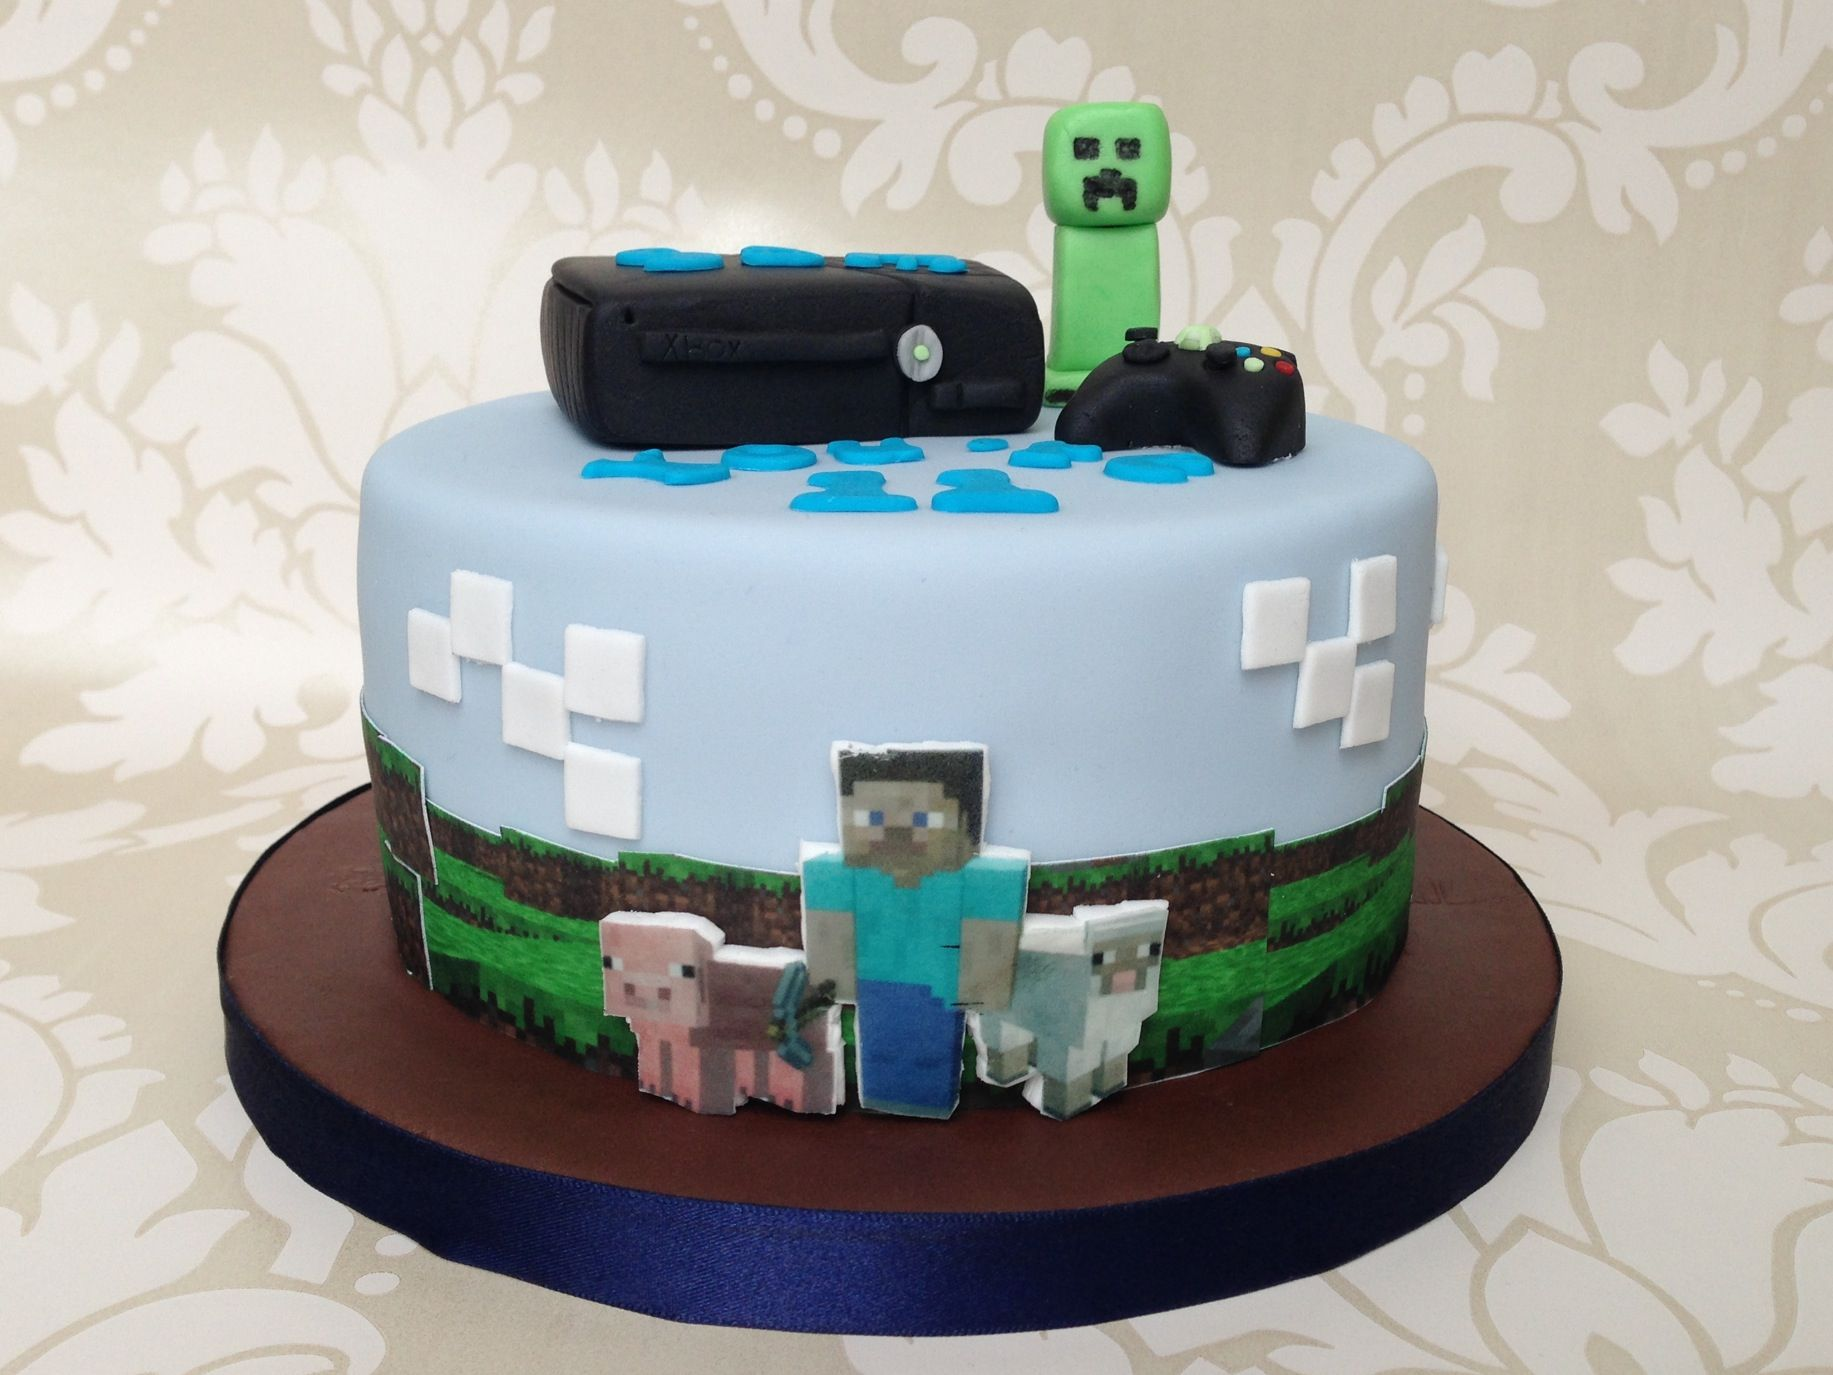 Minecraft Xbox 360 cake birthday ideas Pinterest Xbox Cake